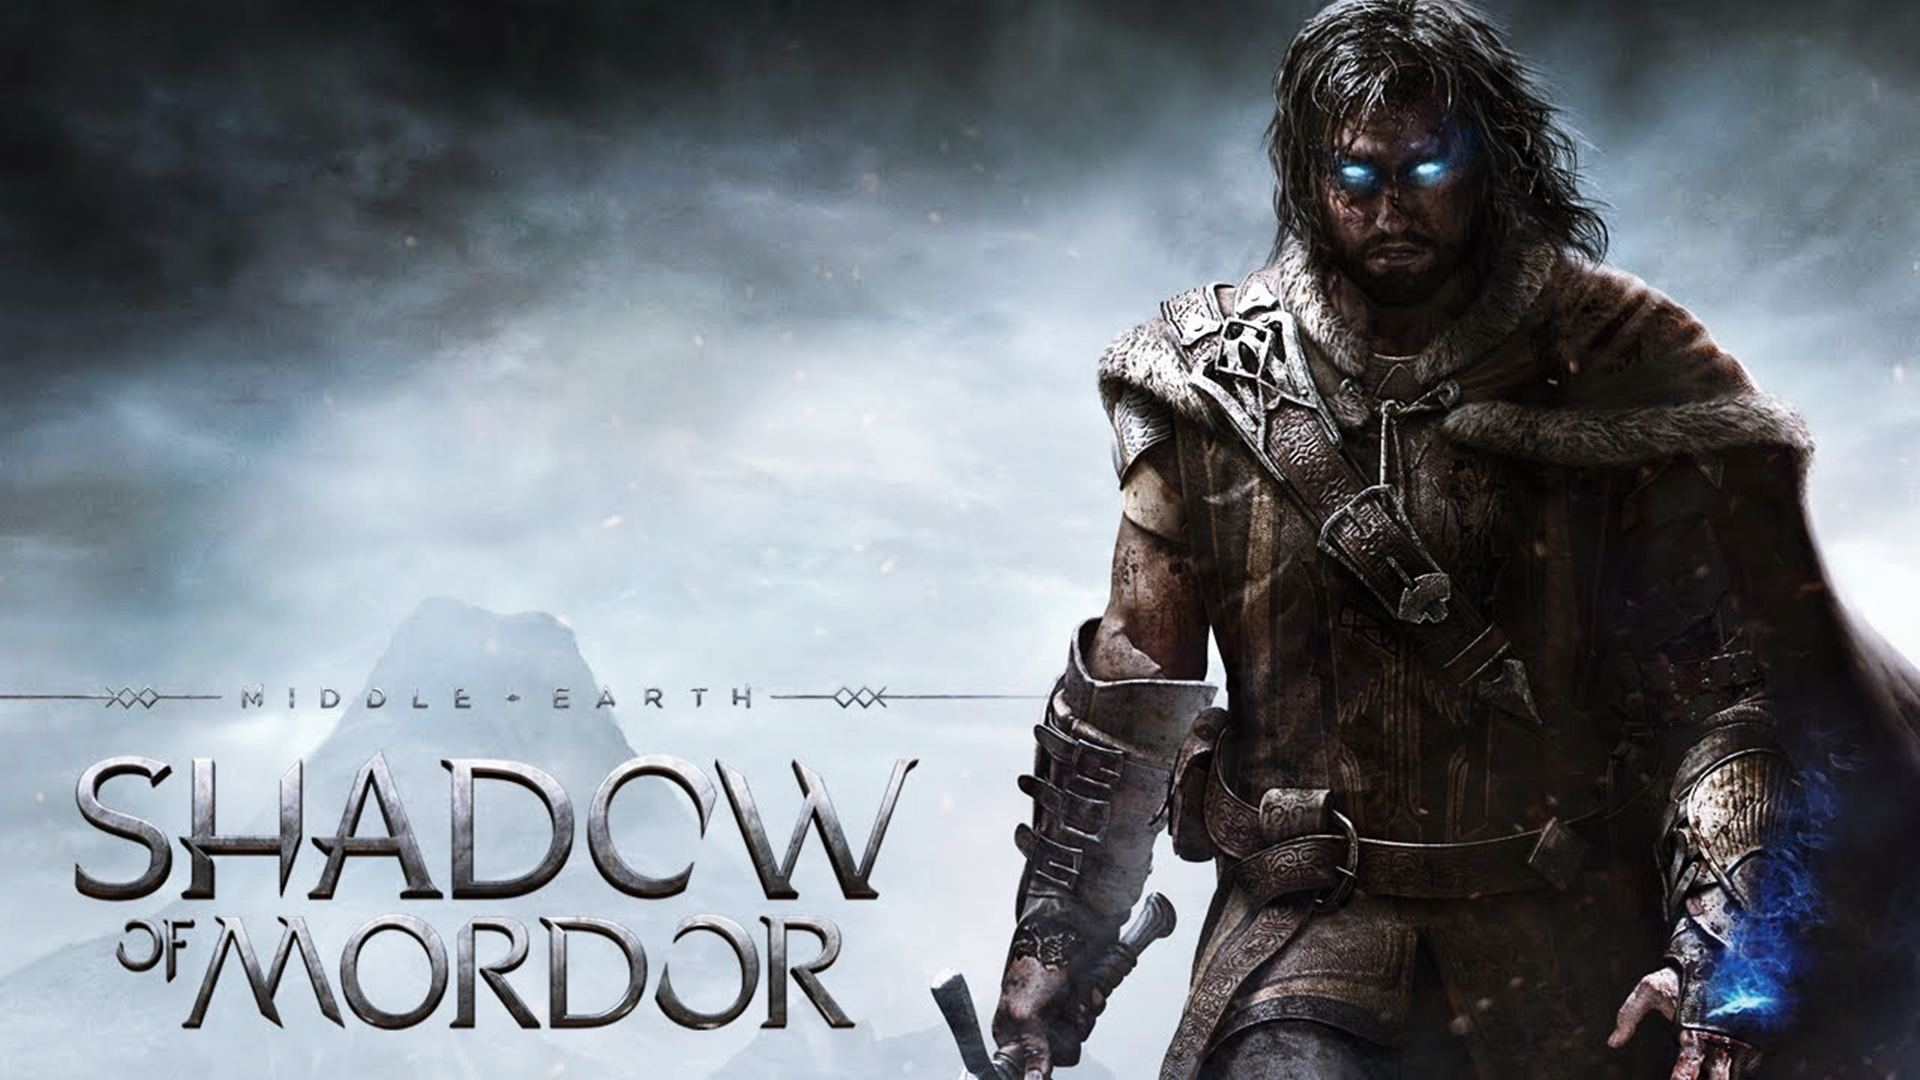 Free Download Shadow Of Mordor Wallpaper 1366x768 Wallpaper